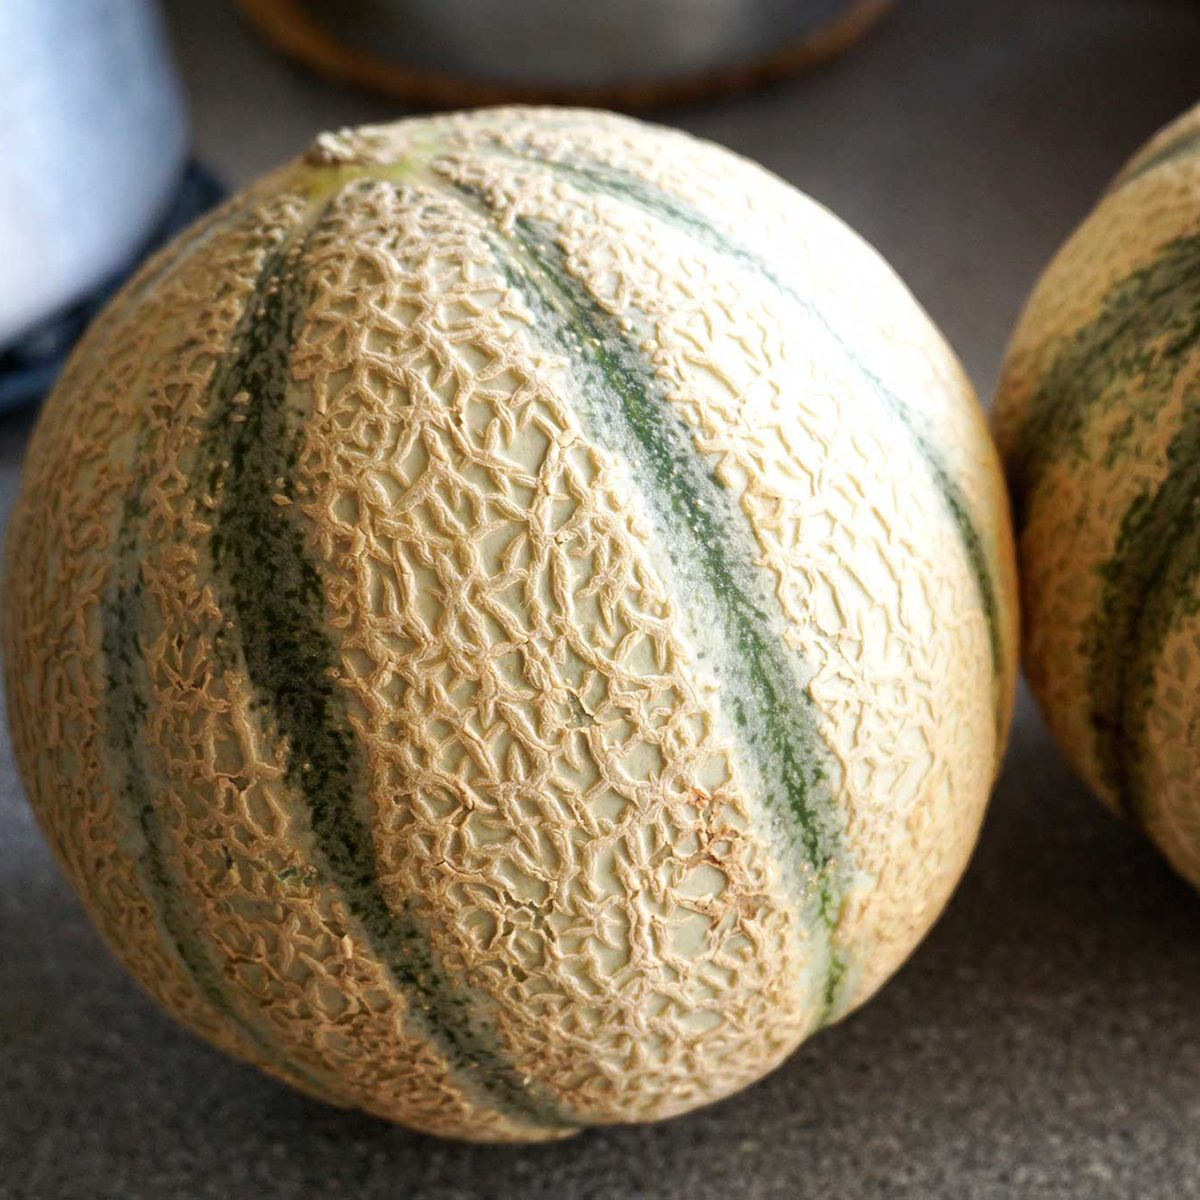 Whole melons